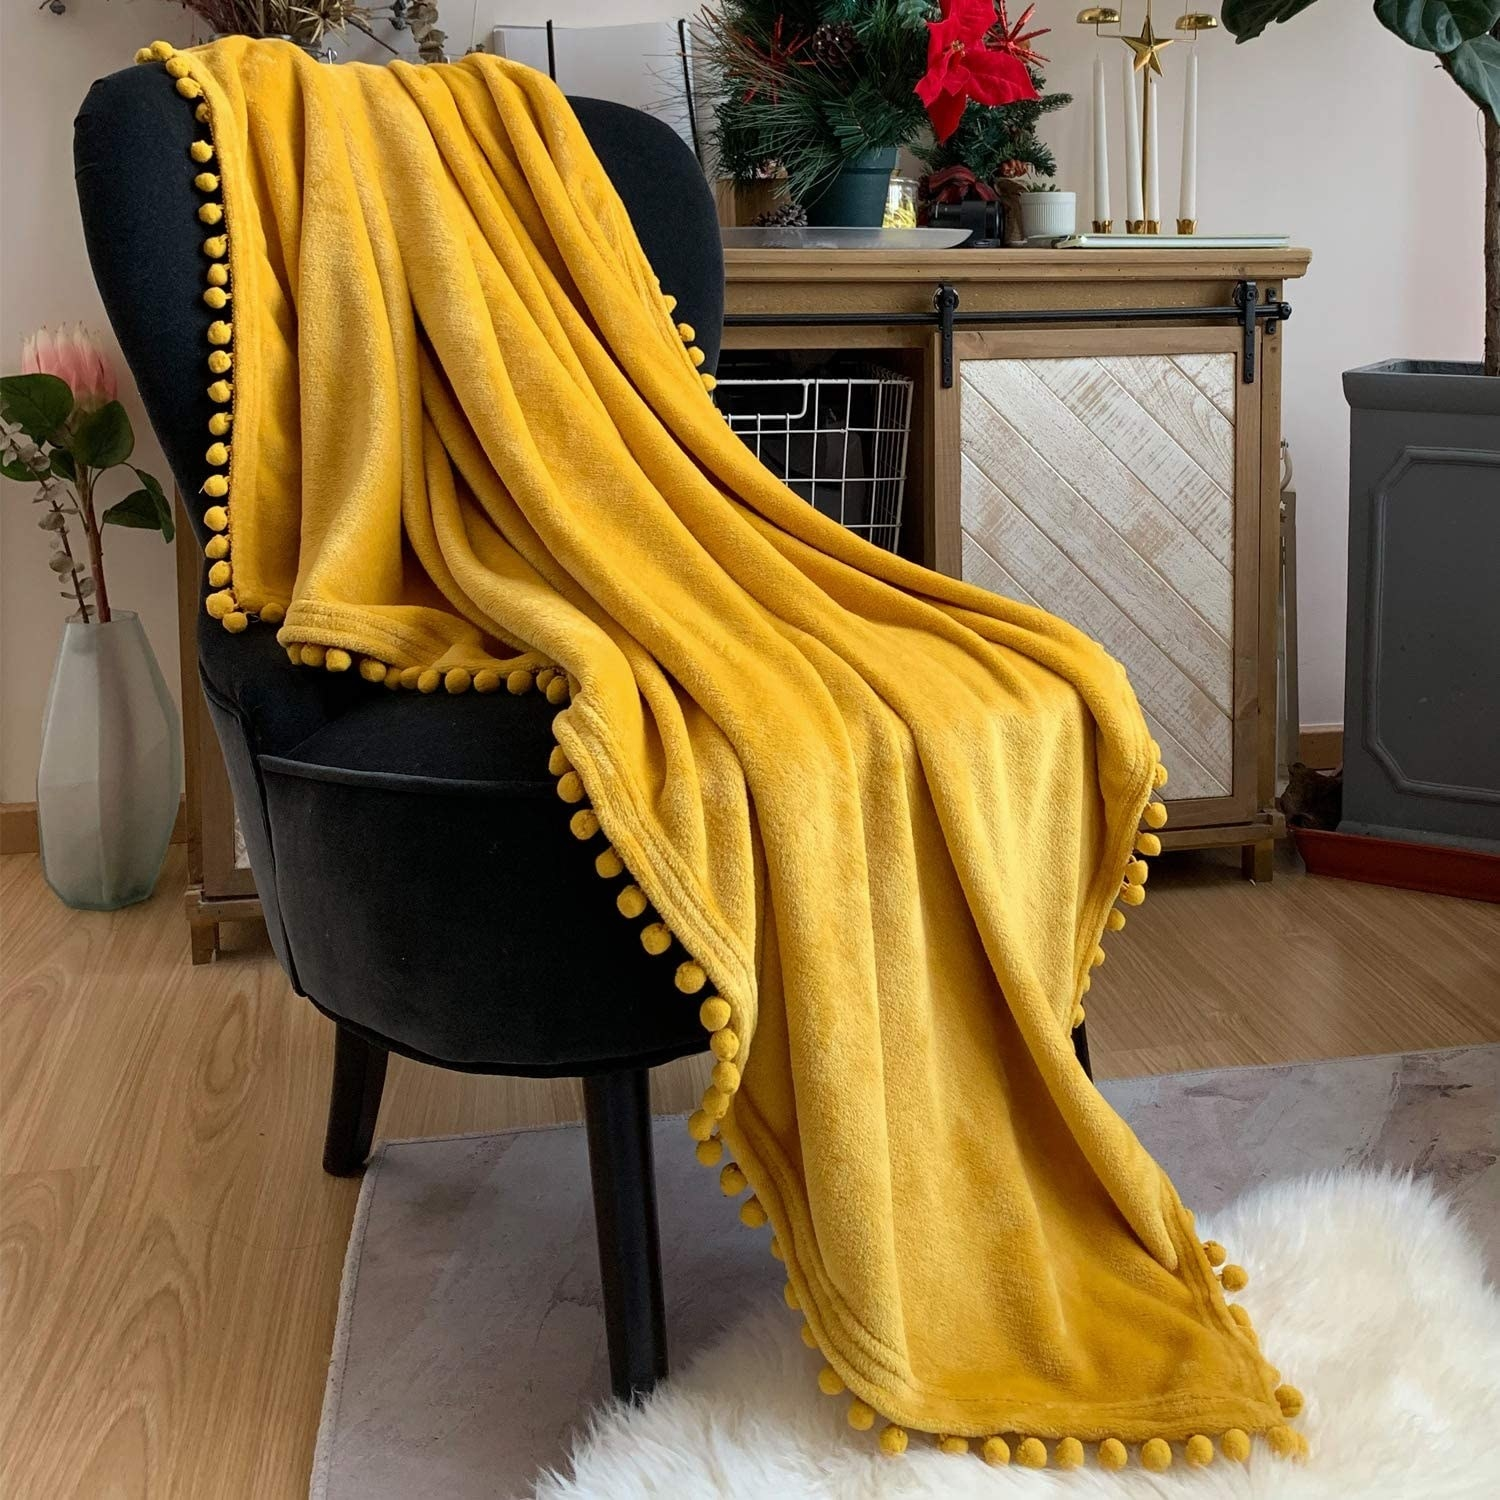 The yellow fleece textured blanket with small pom poms on the edges draped over a chair